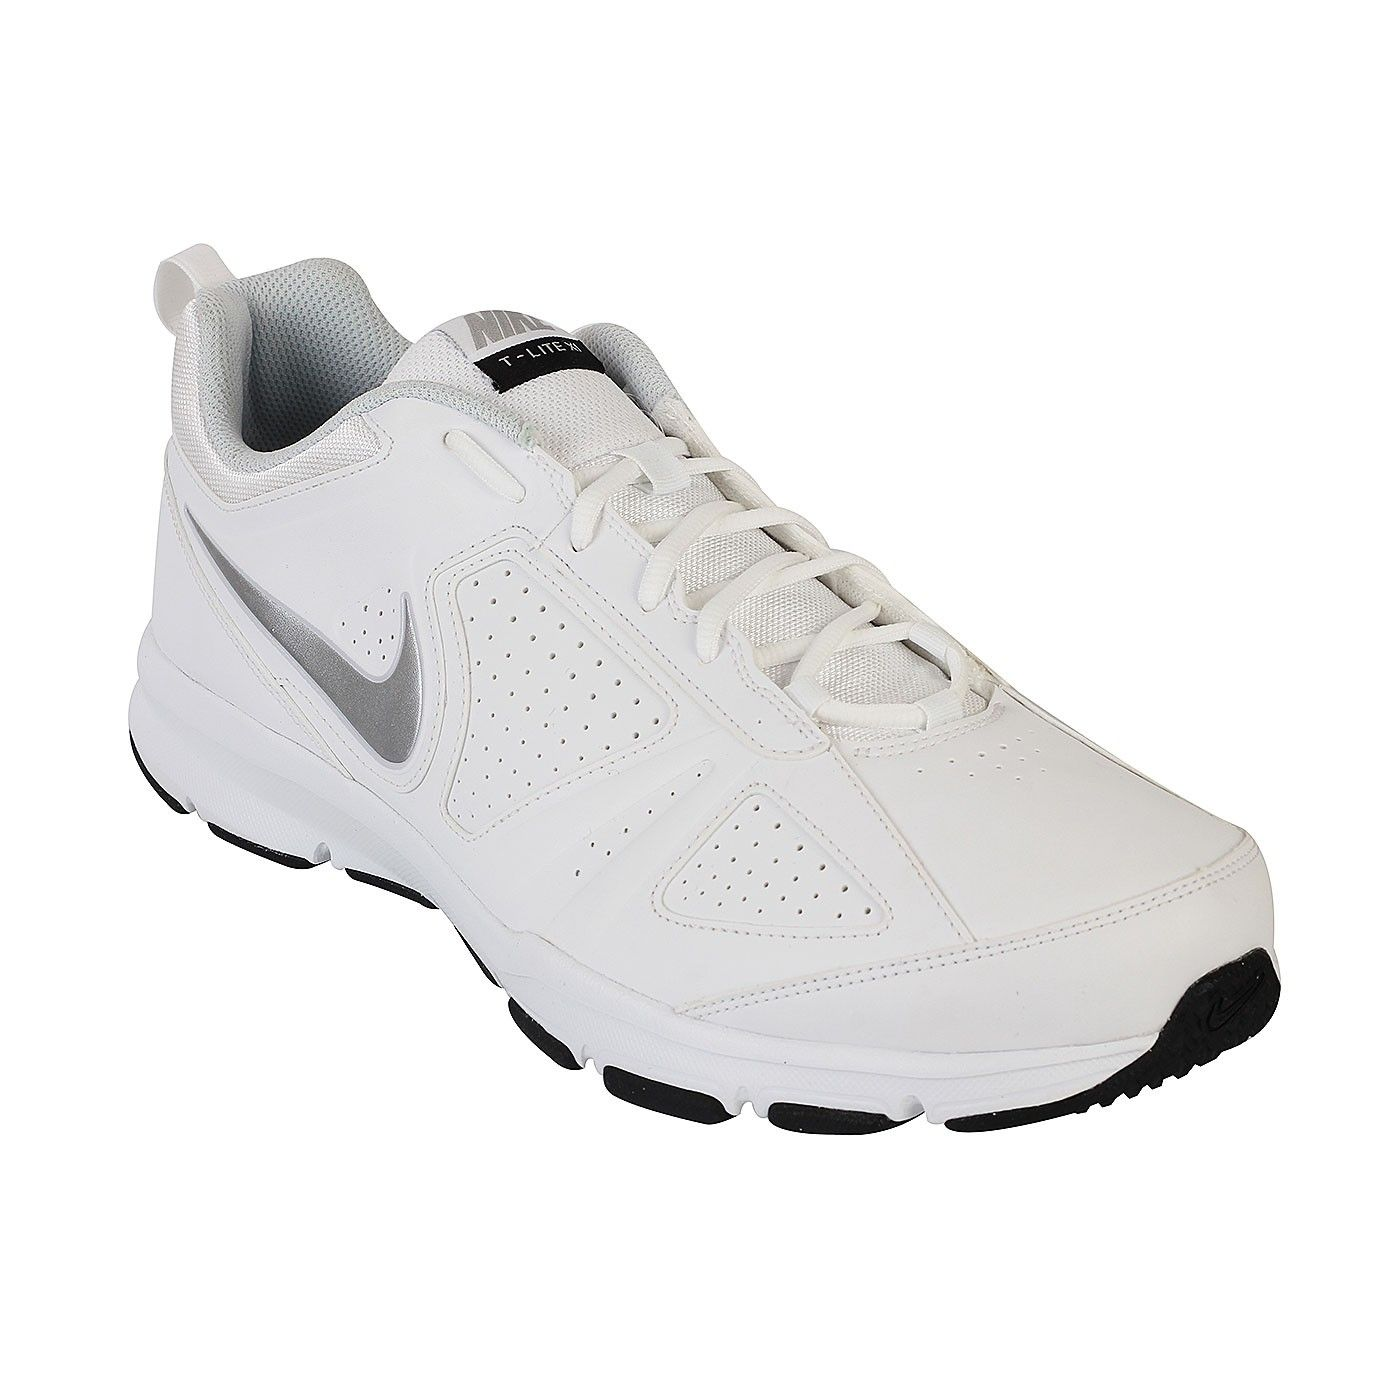 Buy size 14 big feet shoes for men